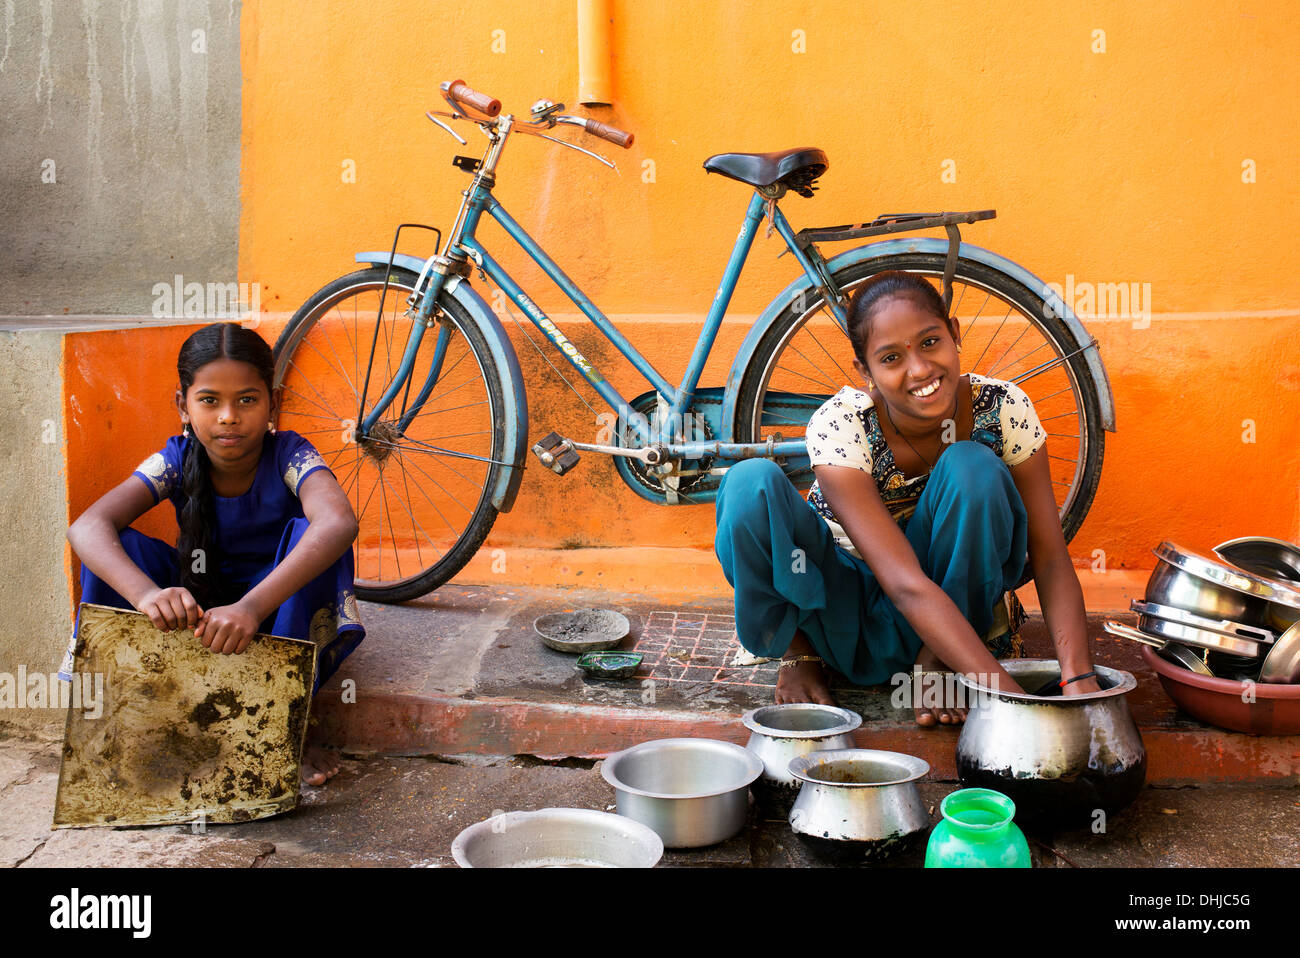 Indian teenage girl washing dishes outside their rural indian village home. Andhra Pradesh, India - Stock Image